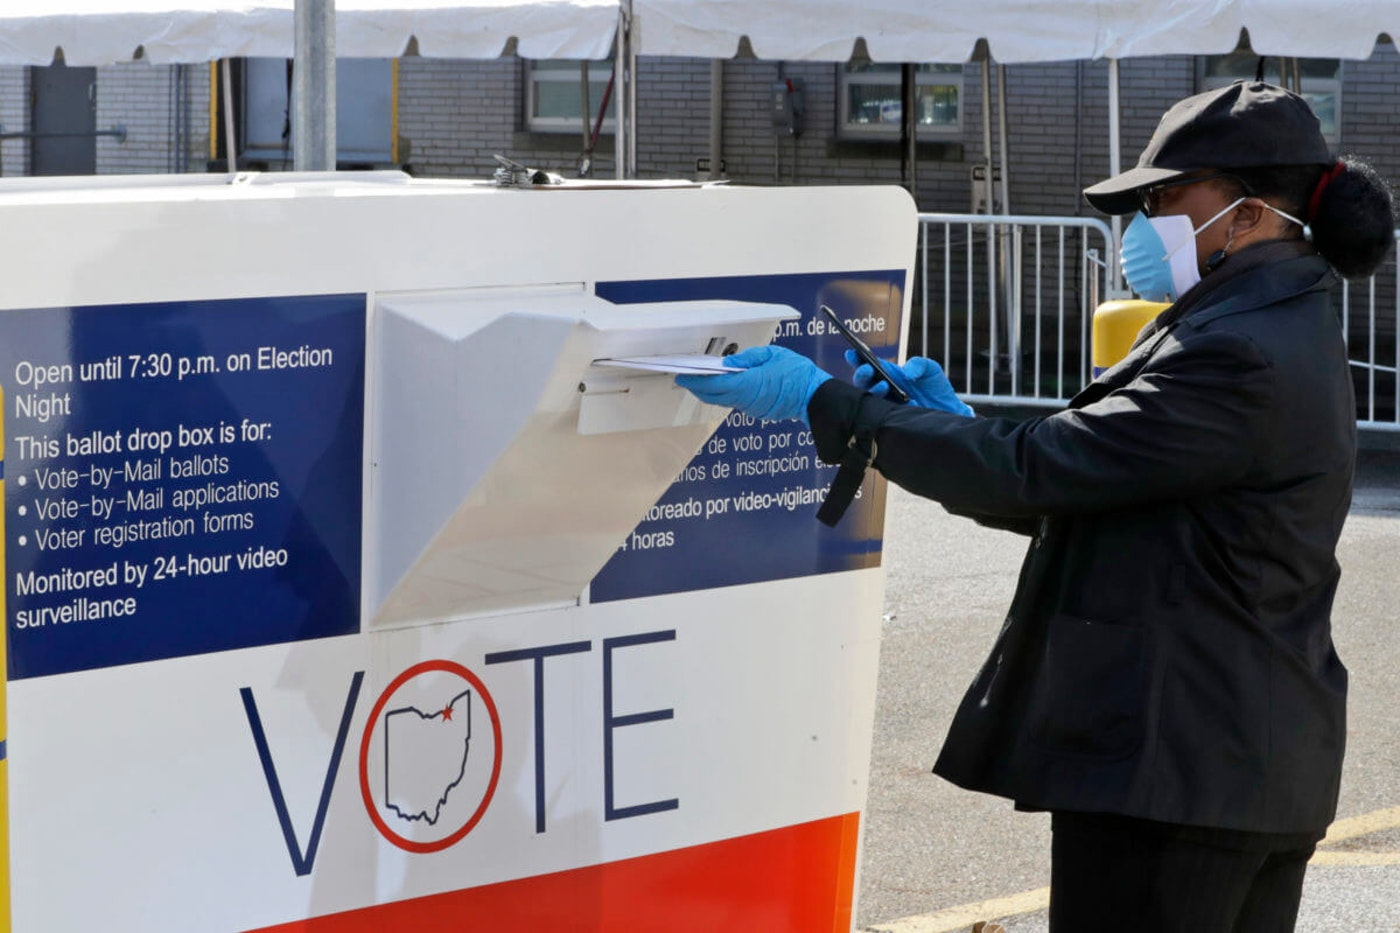 Marcia McCoy drops her ballot into a box outside the Cuyahoga County Board of Elections. (AP Photo/Tony Dejak)